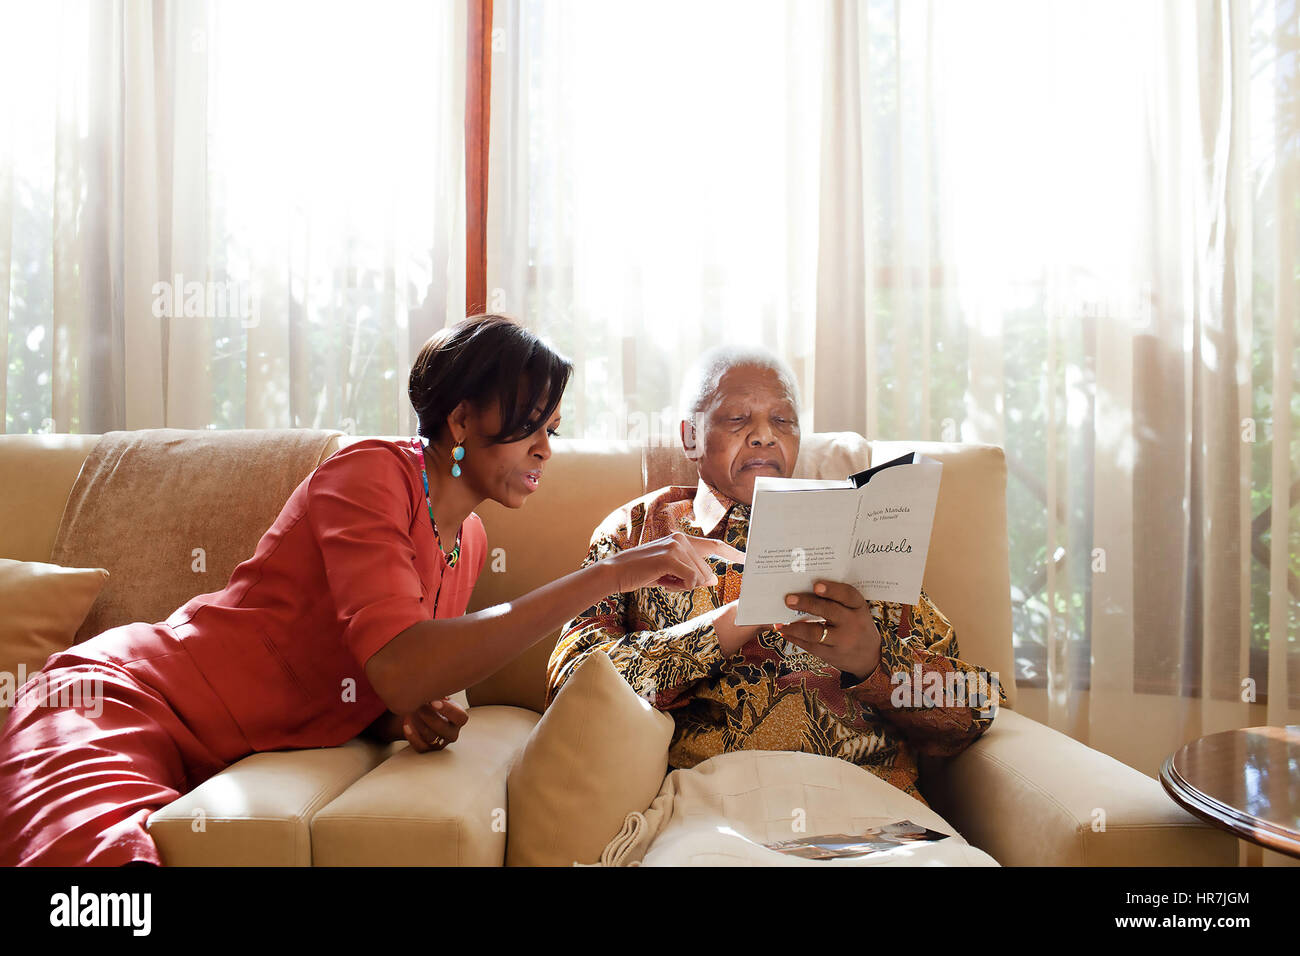 MICHELLE OBAMA  meets ex-South African President Nelson Mandela at his Johannesburg home on 21 June 2011. Photo: - Stock Image